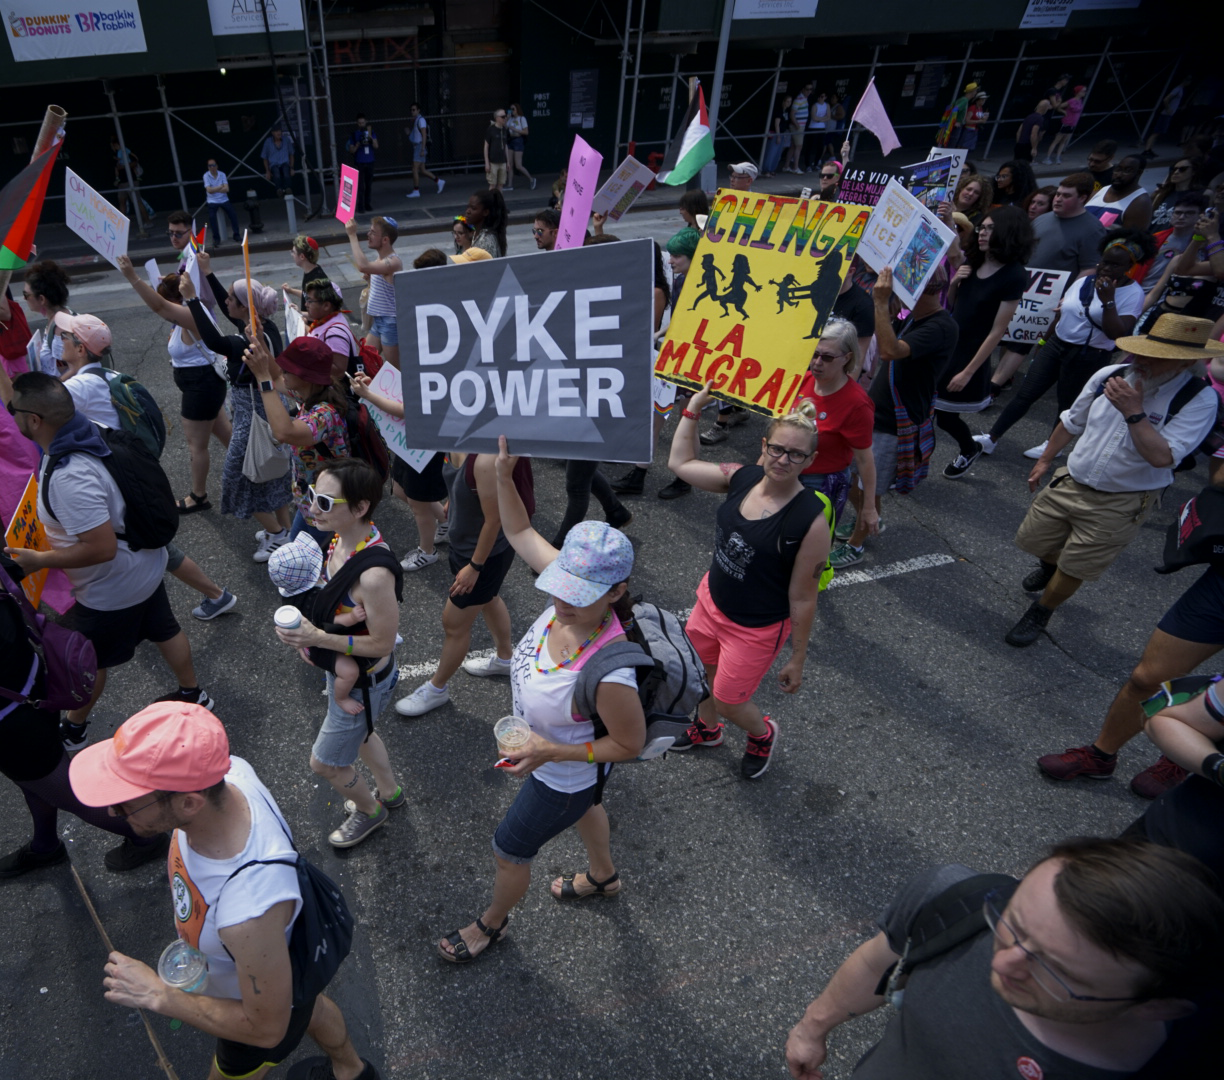 Dyke Power Photo: David A Garcia